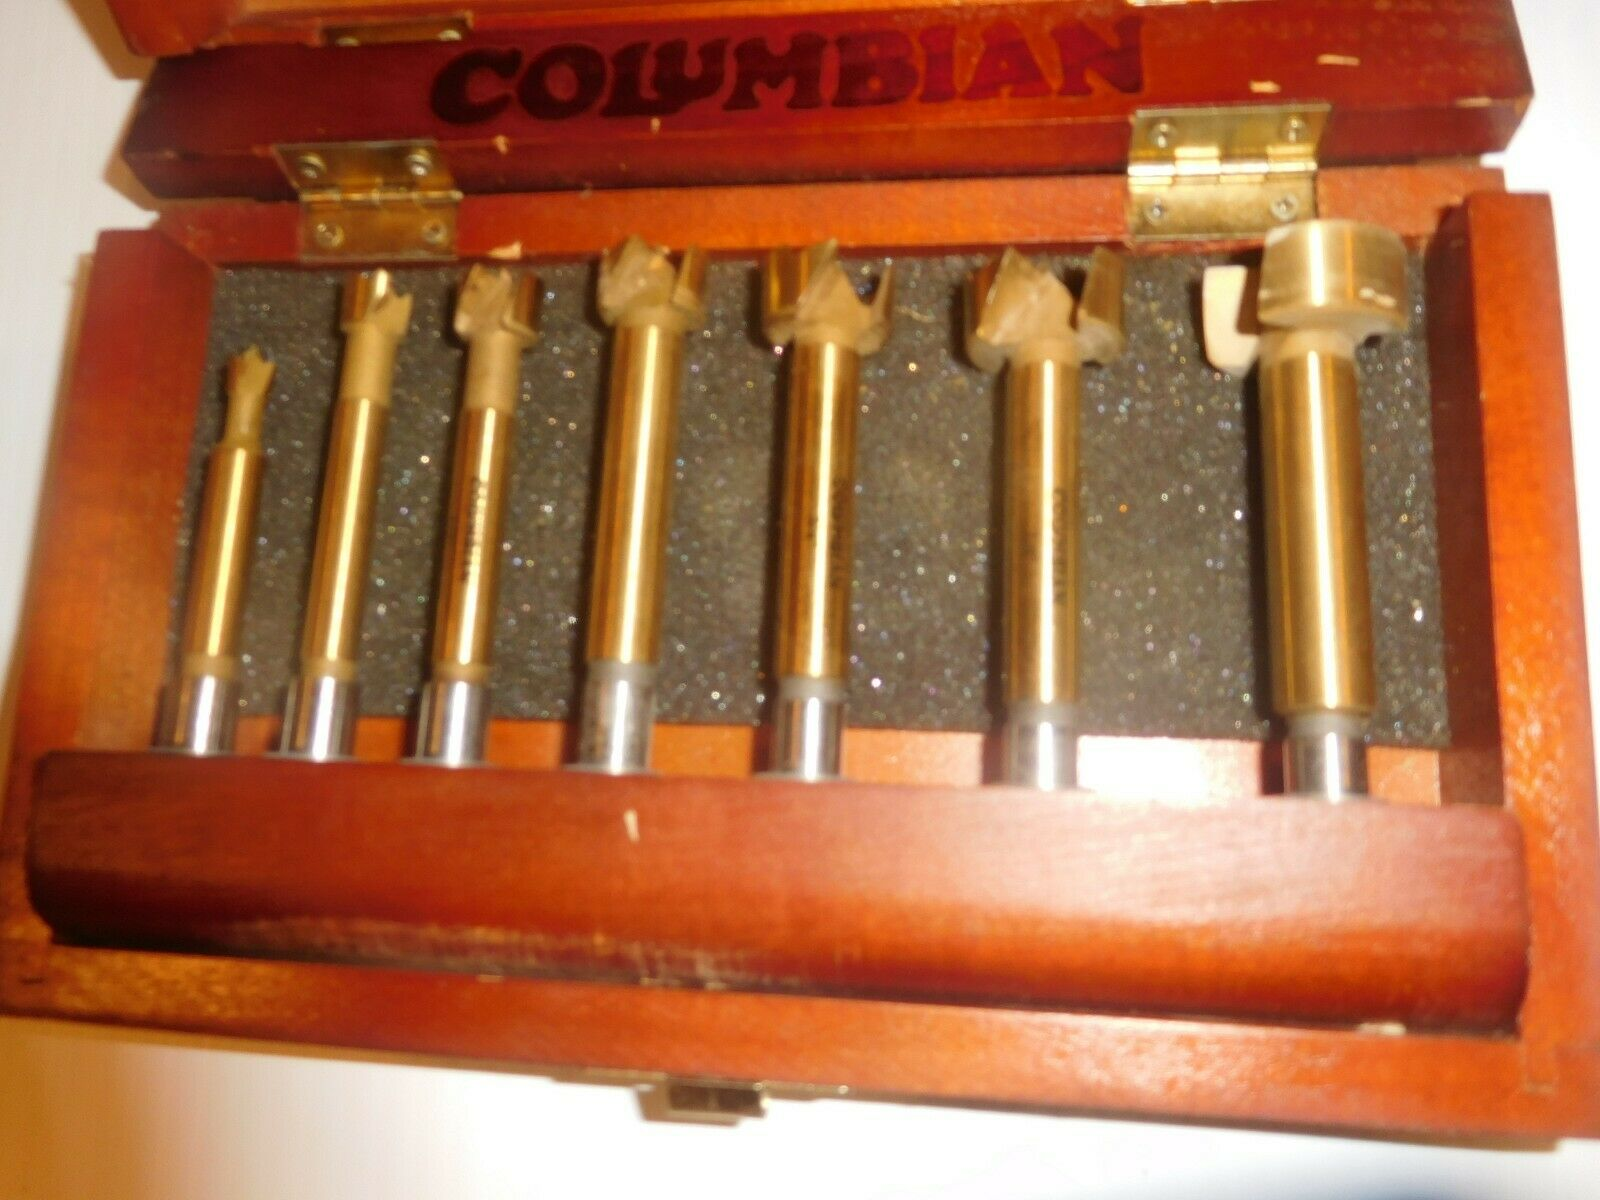 COLUMBIA WOODWORKING DRILL BIT SET in WOODEN BOX CARPENTRY TOOLS UNUSED